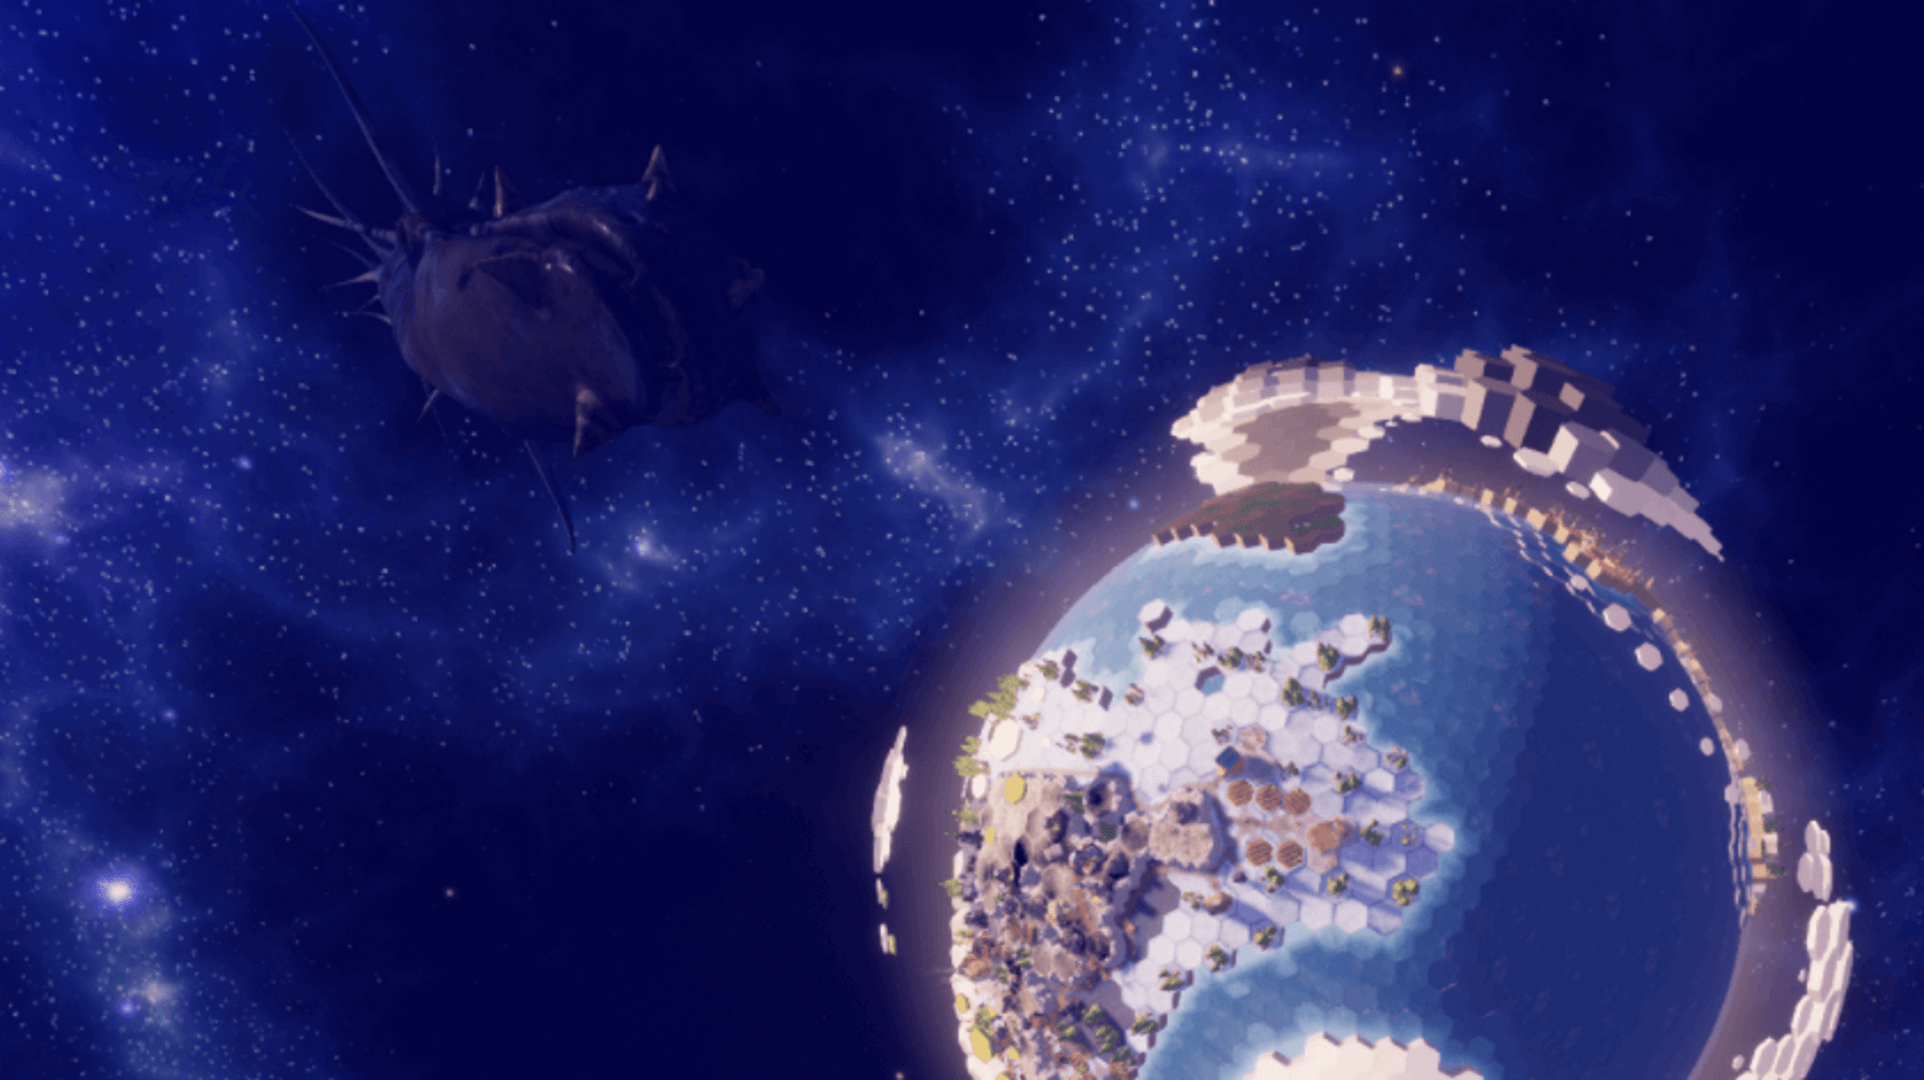 Space Whales!